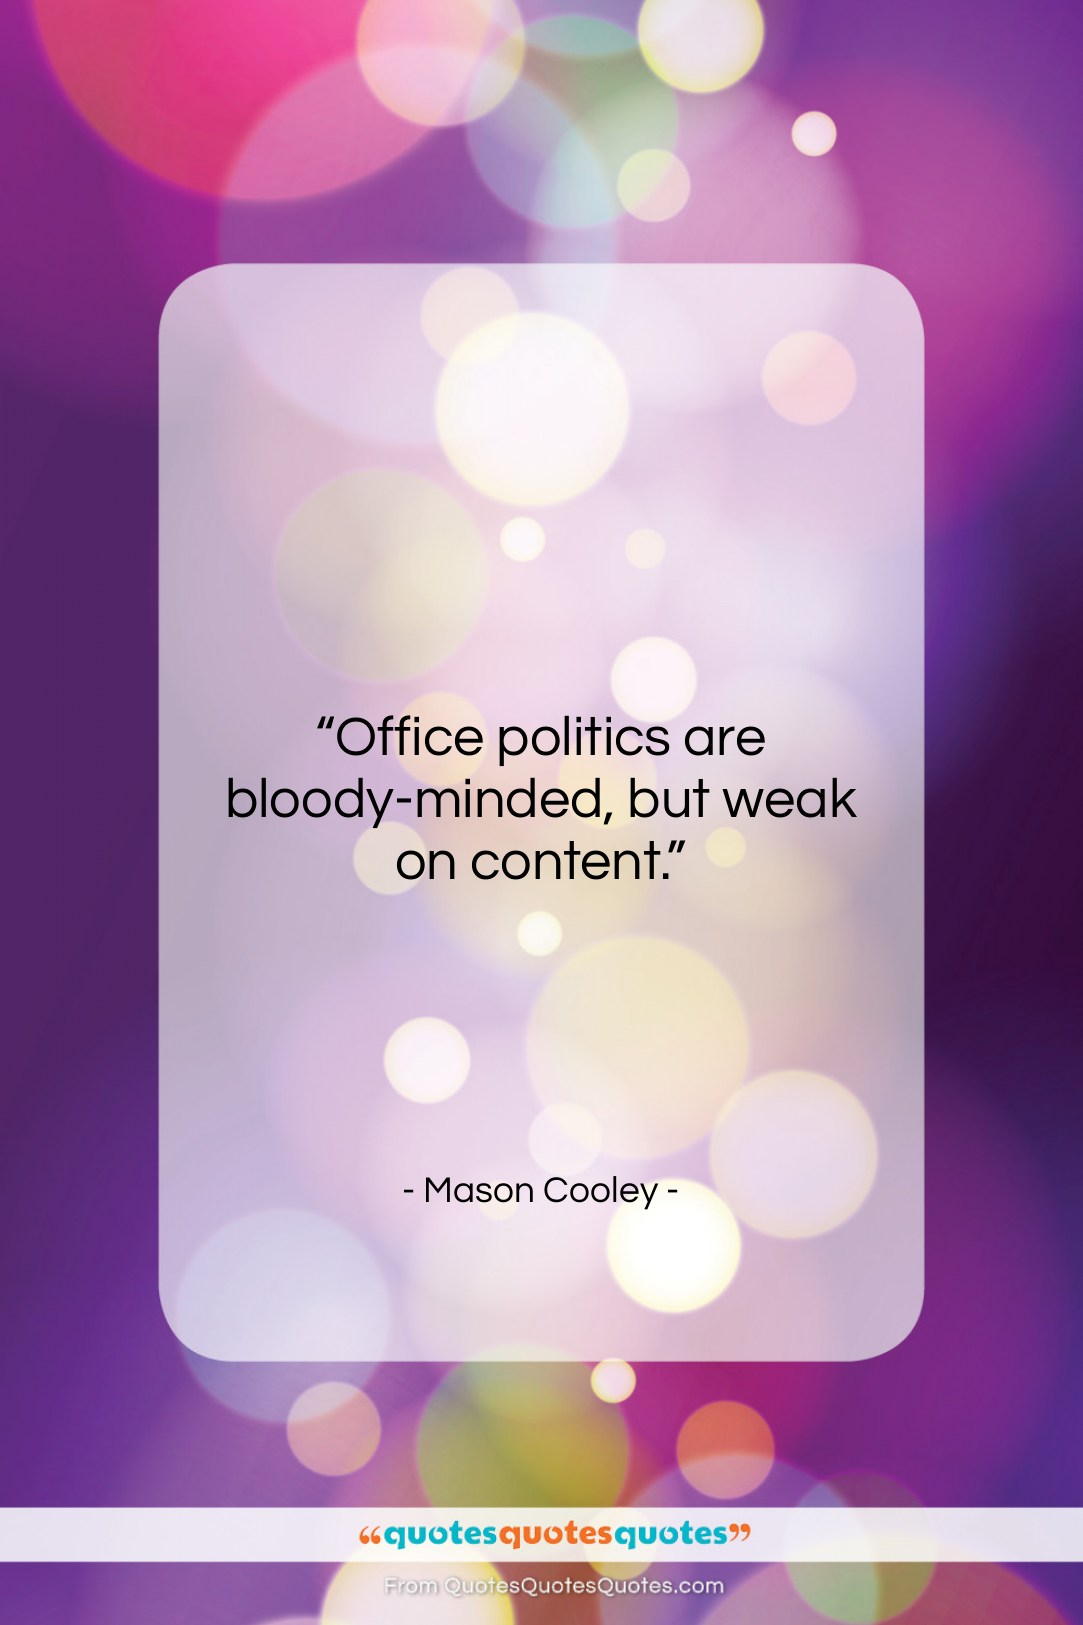 Get The Whole Mason Cooley Quote Office Politics Are Bloody Minded